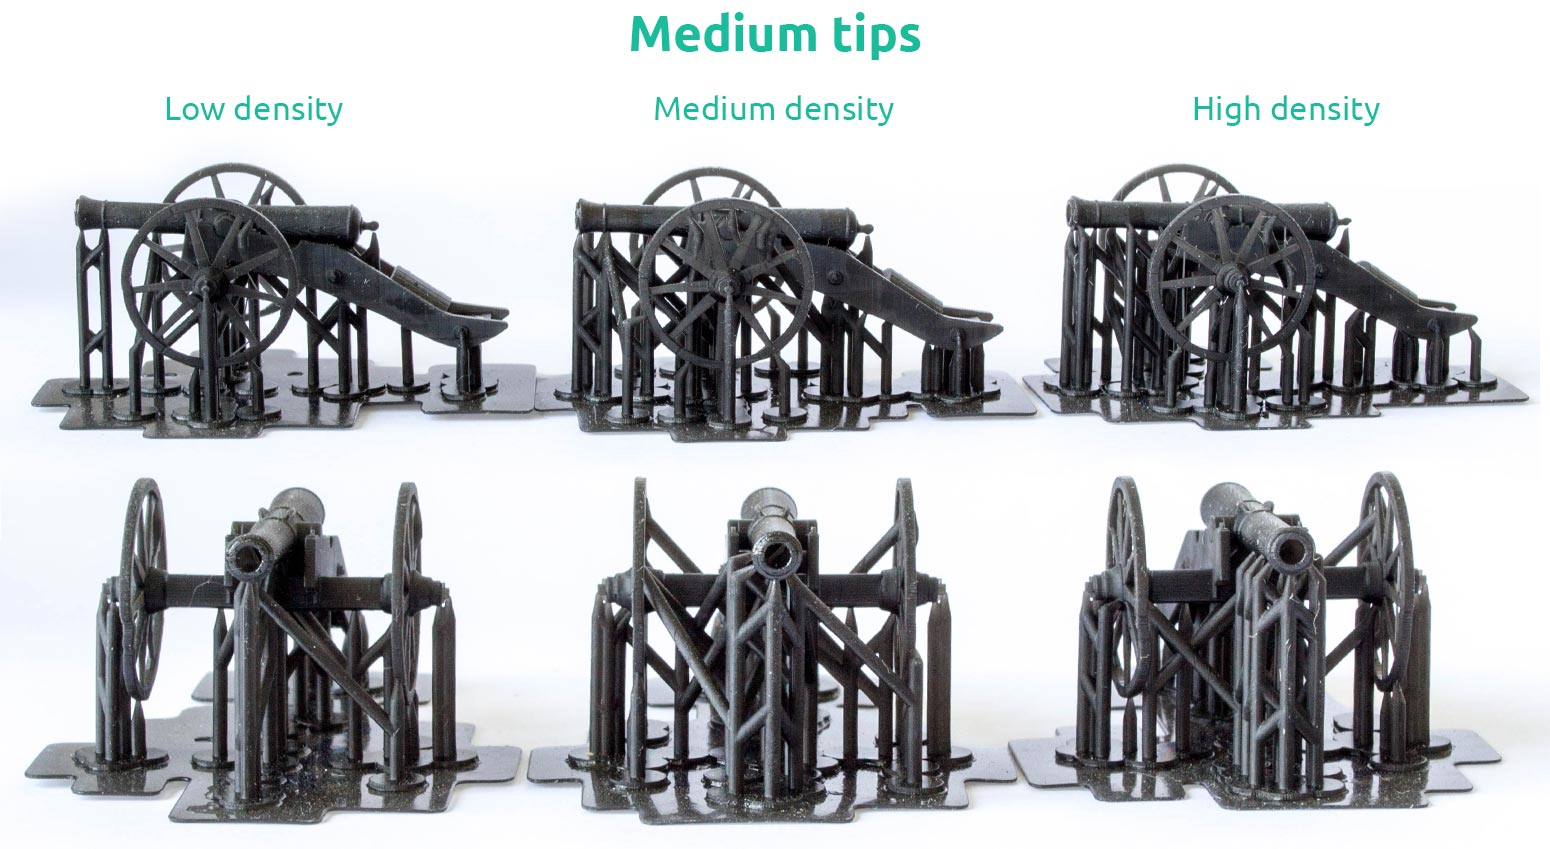 AmeraLabs key principles of 3D printing supports that work experiment cannon medium tips